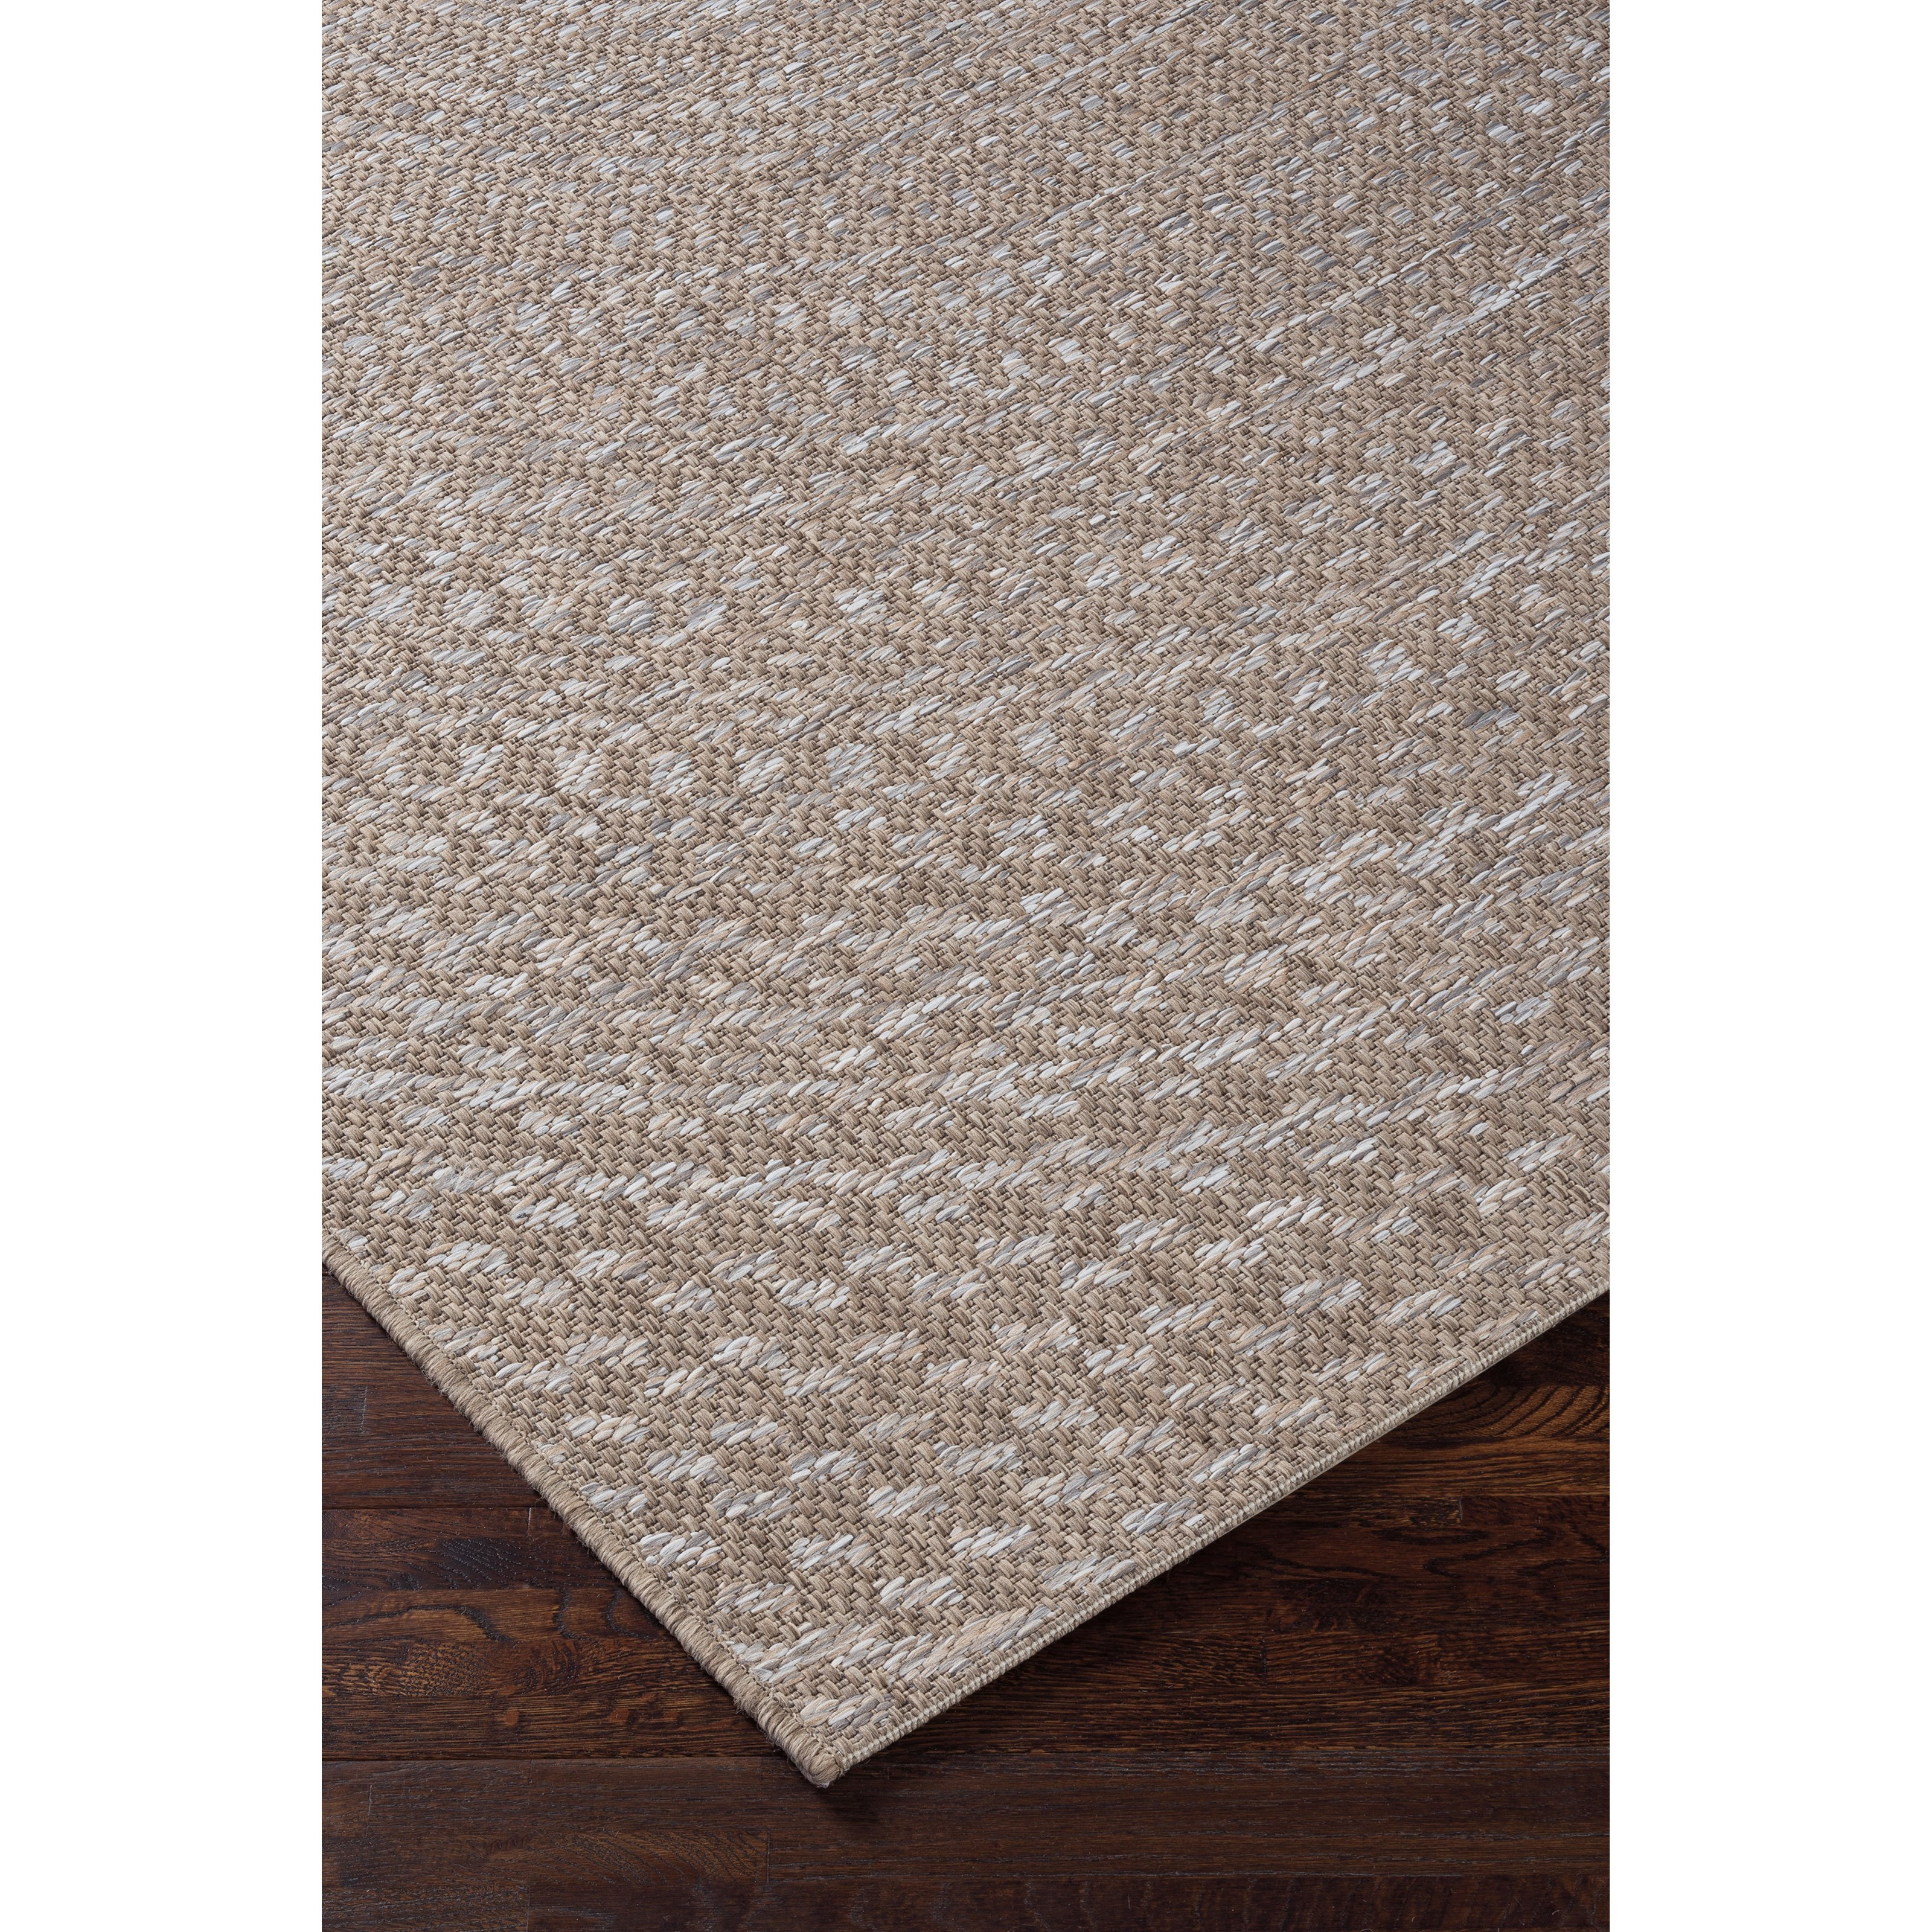 Signature Design by Ashley Casual Area Rugs Larber Gray